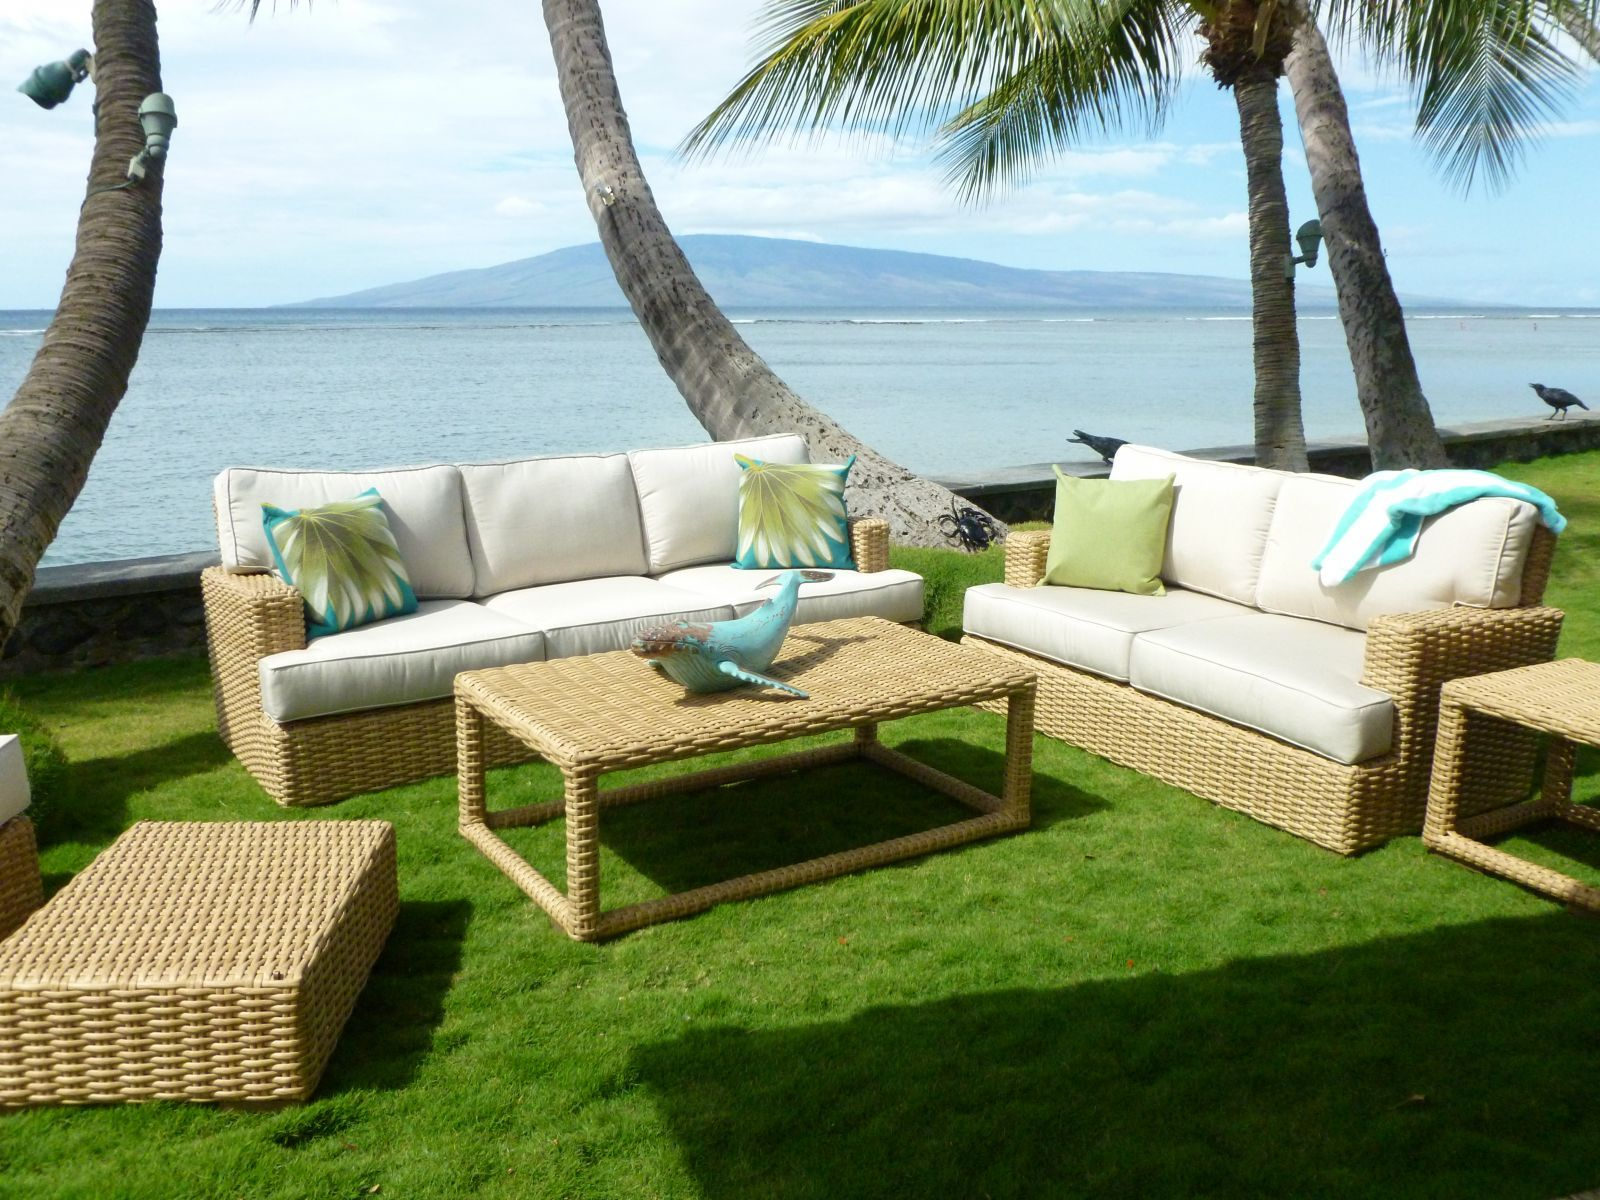 Maui Furniture Store Discount Sale Specials Lahaina Storefront